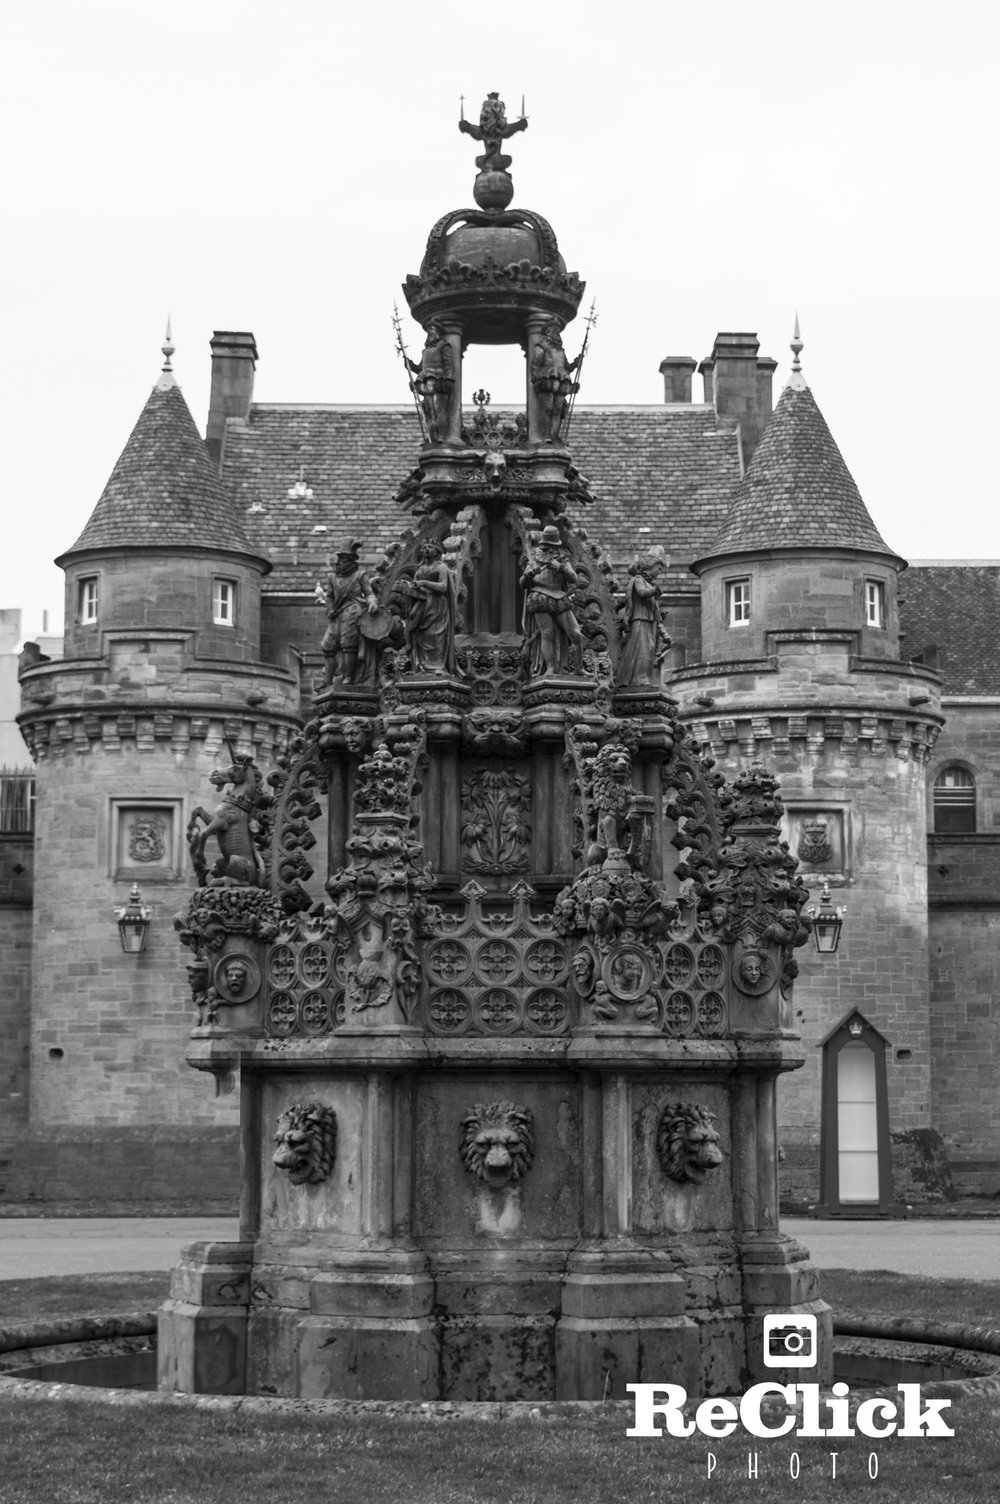 View of the ornate fountain in the Palace's Forecourt.